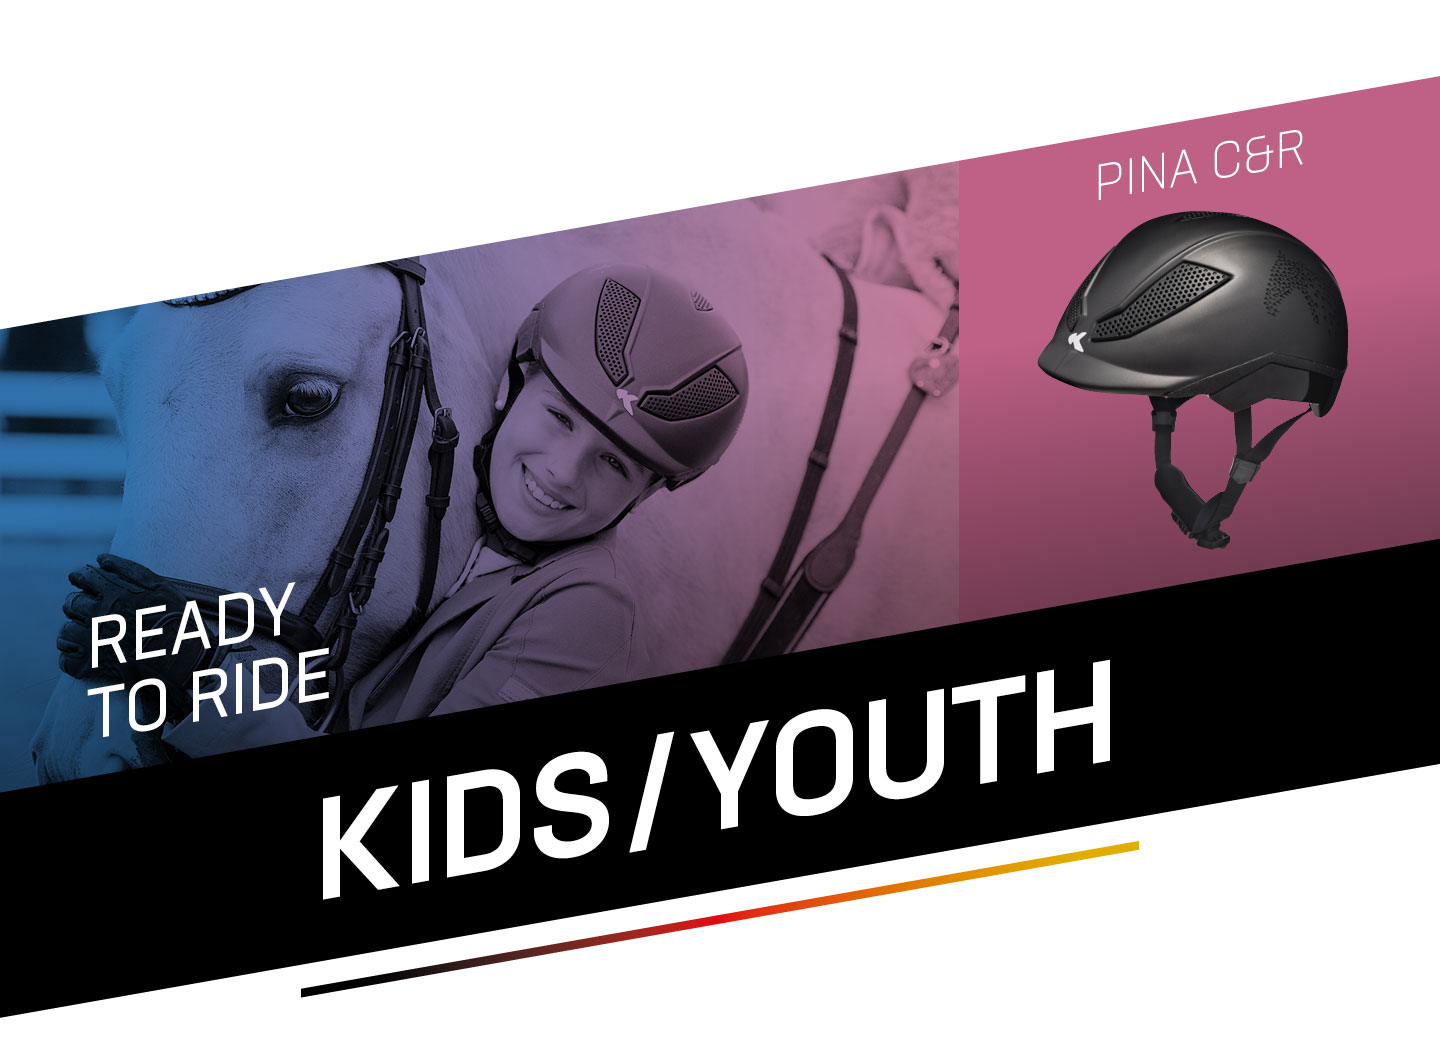 Kids/Youth - Ready To Ride